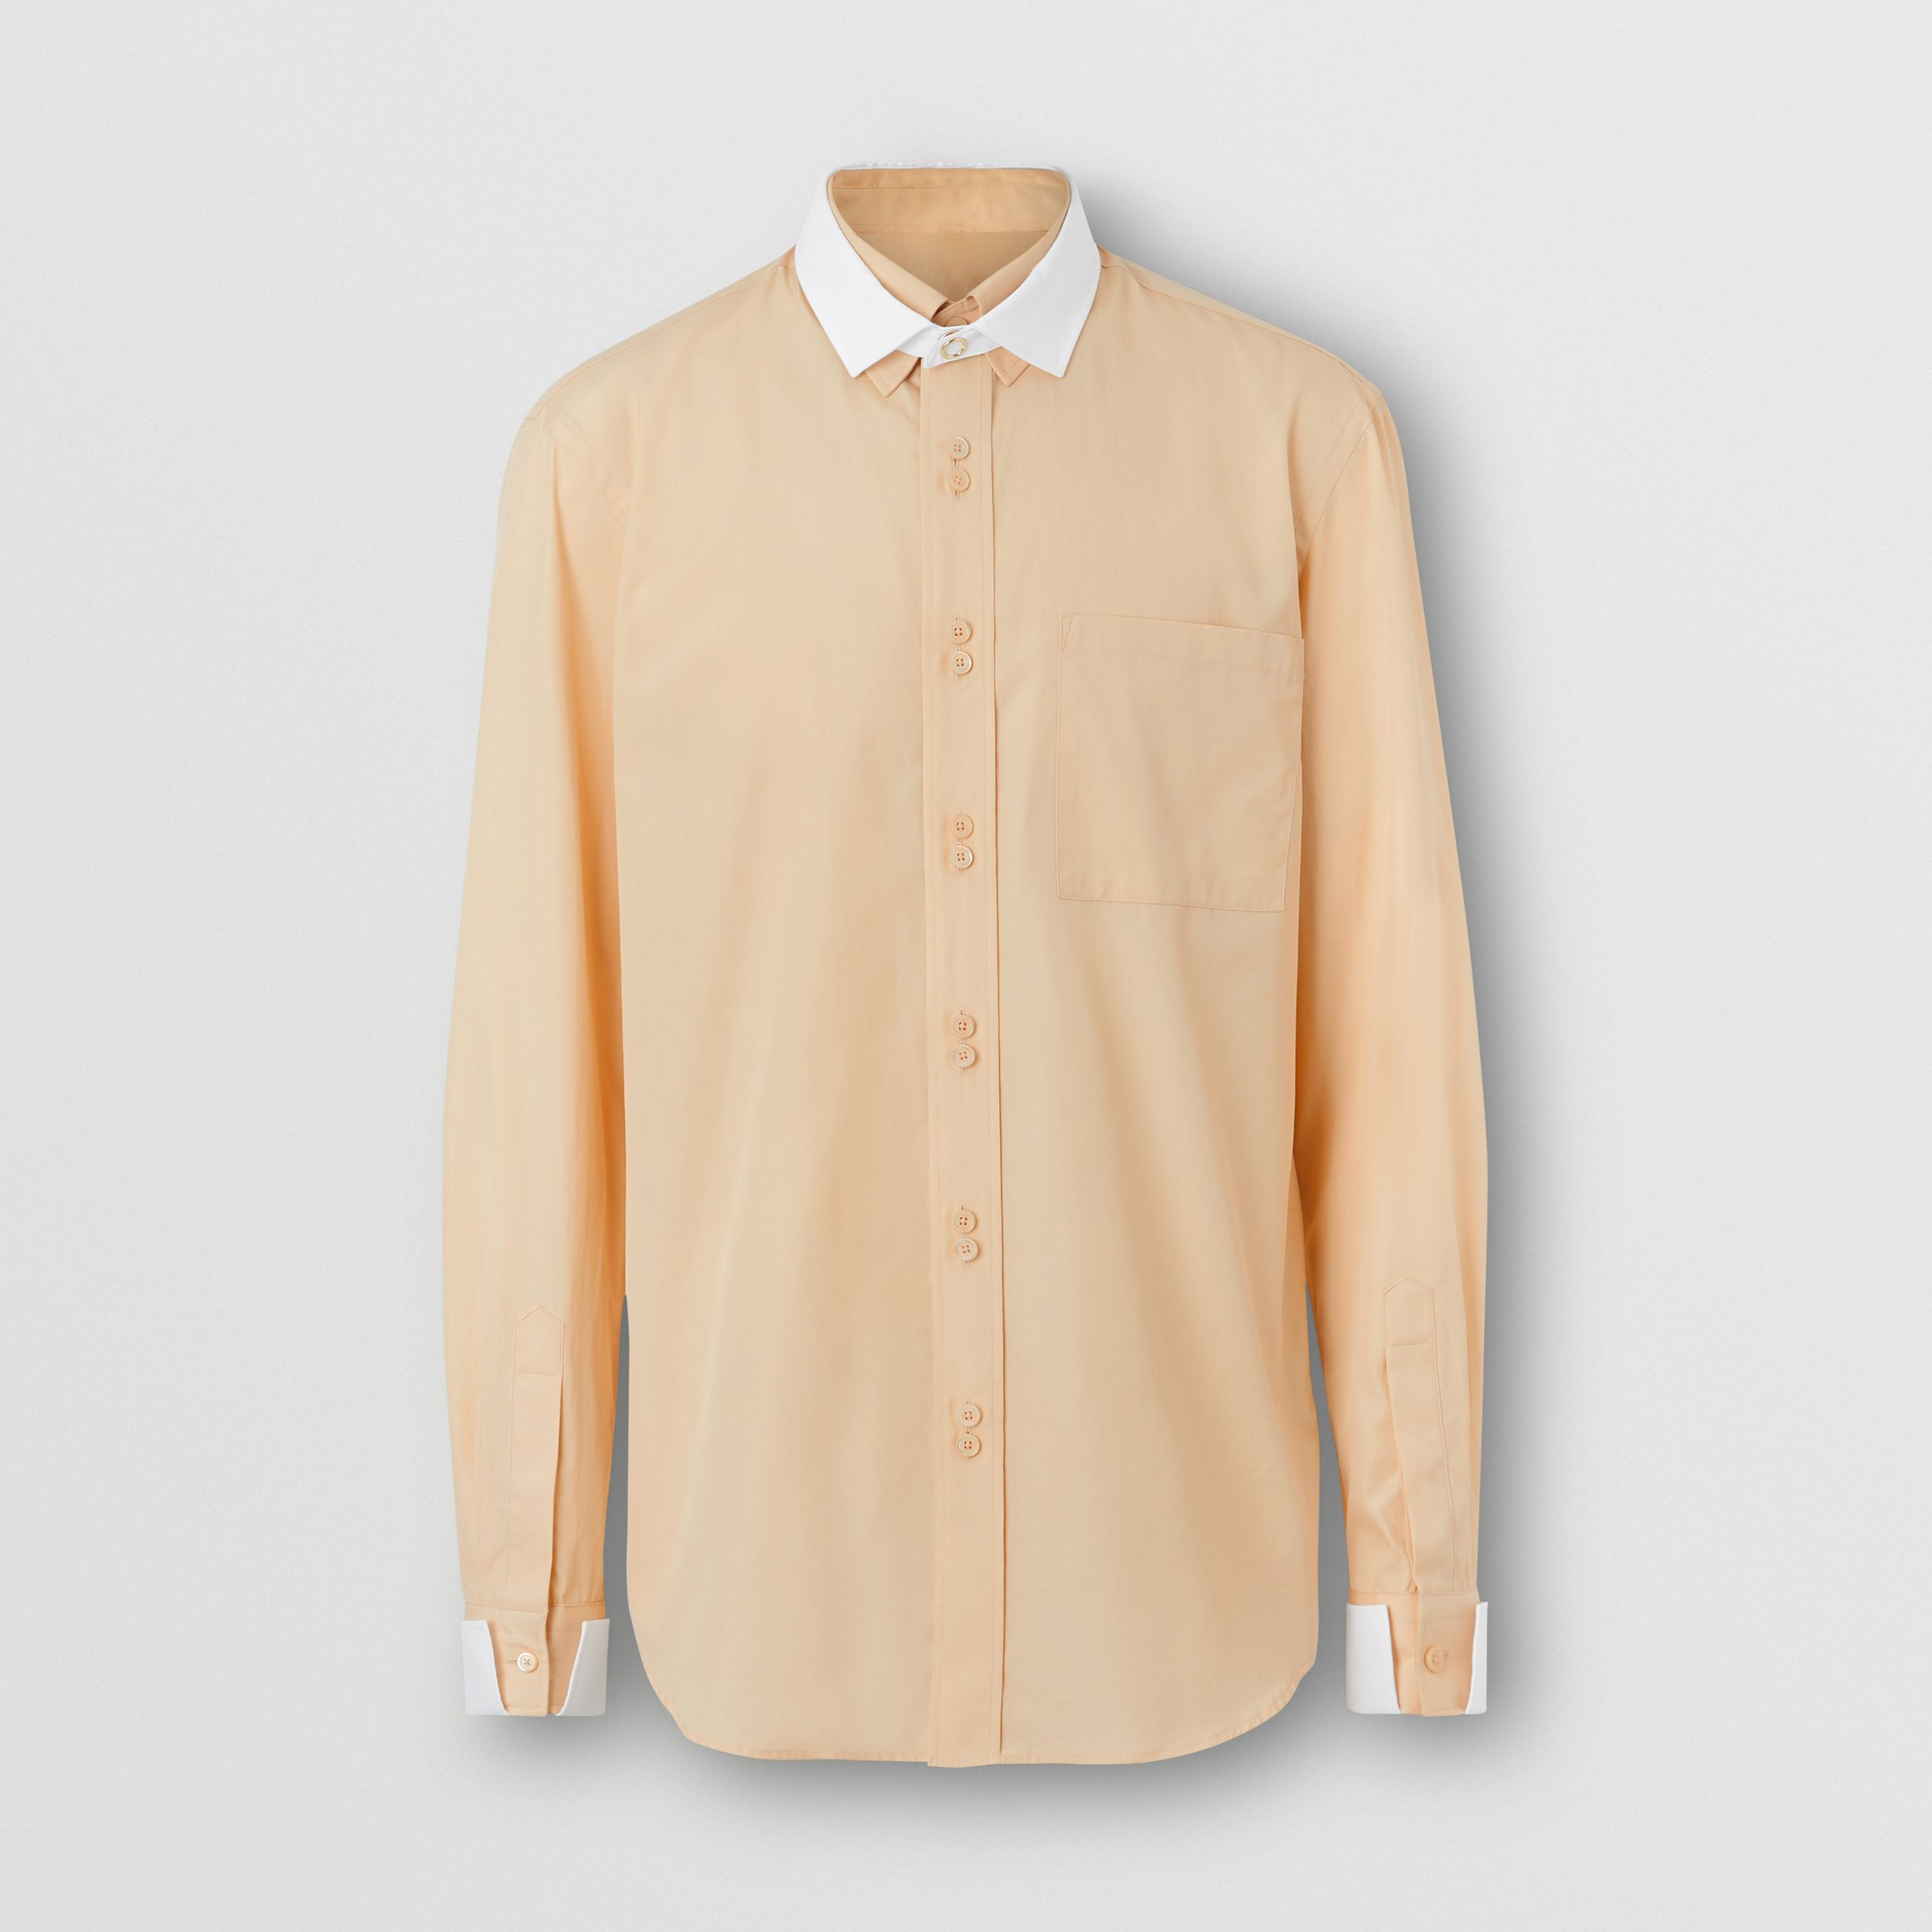 Classic Fit Detachable Collar Cotton Poplin Shirt in Buttermilk - Men | Burberry - 4